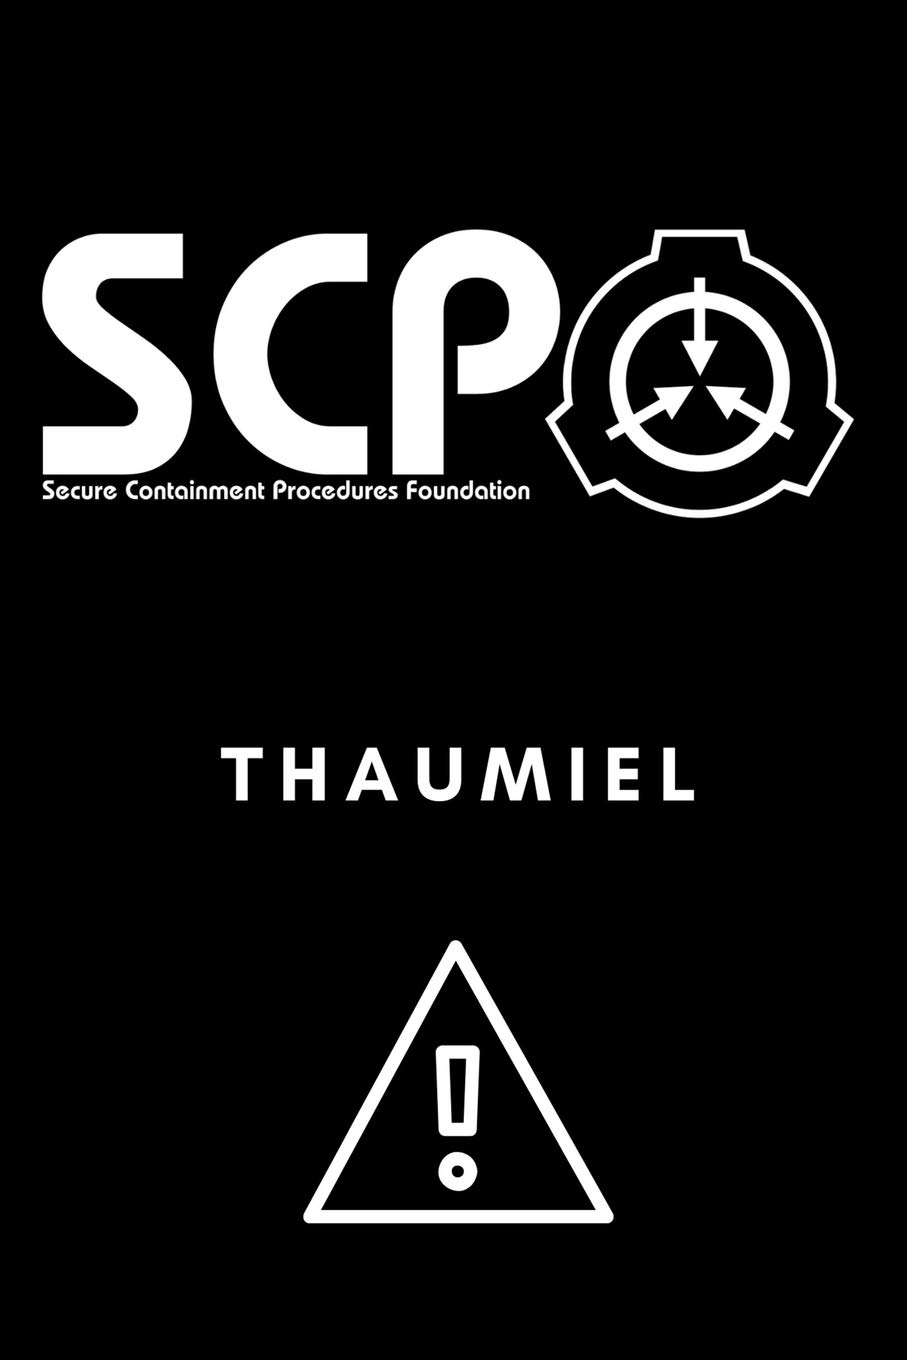 Buy Scp Foundation Thumiel Notebook College Ruled Notebook For Scp Foundation Fans 6x9 Inches 120 Pages Secure Contain Protect Book Online At Low Prices In India Scp Foundation Find this pin and more on scp foundation by eris 🖤. amazon in